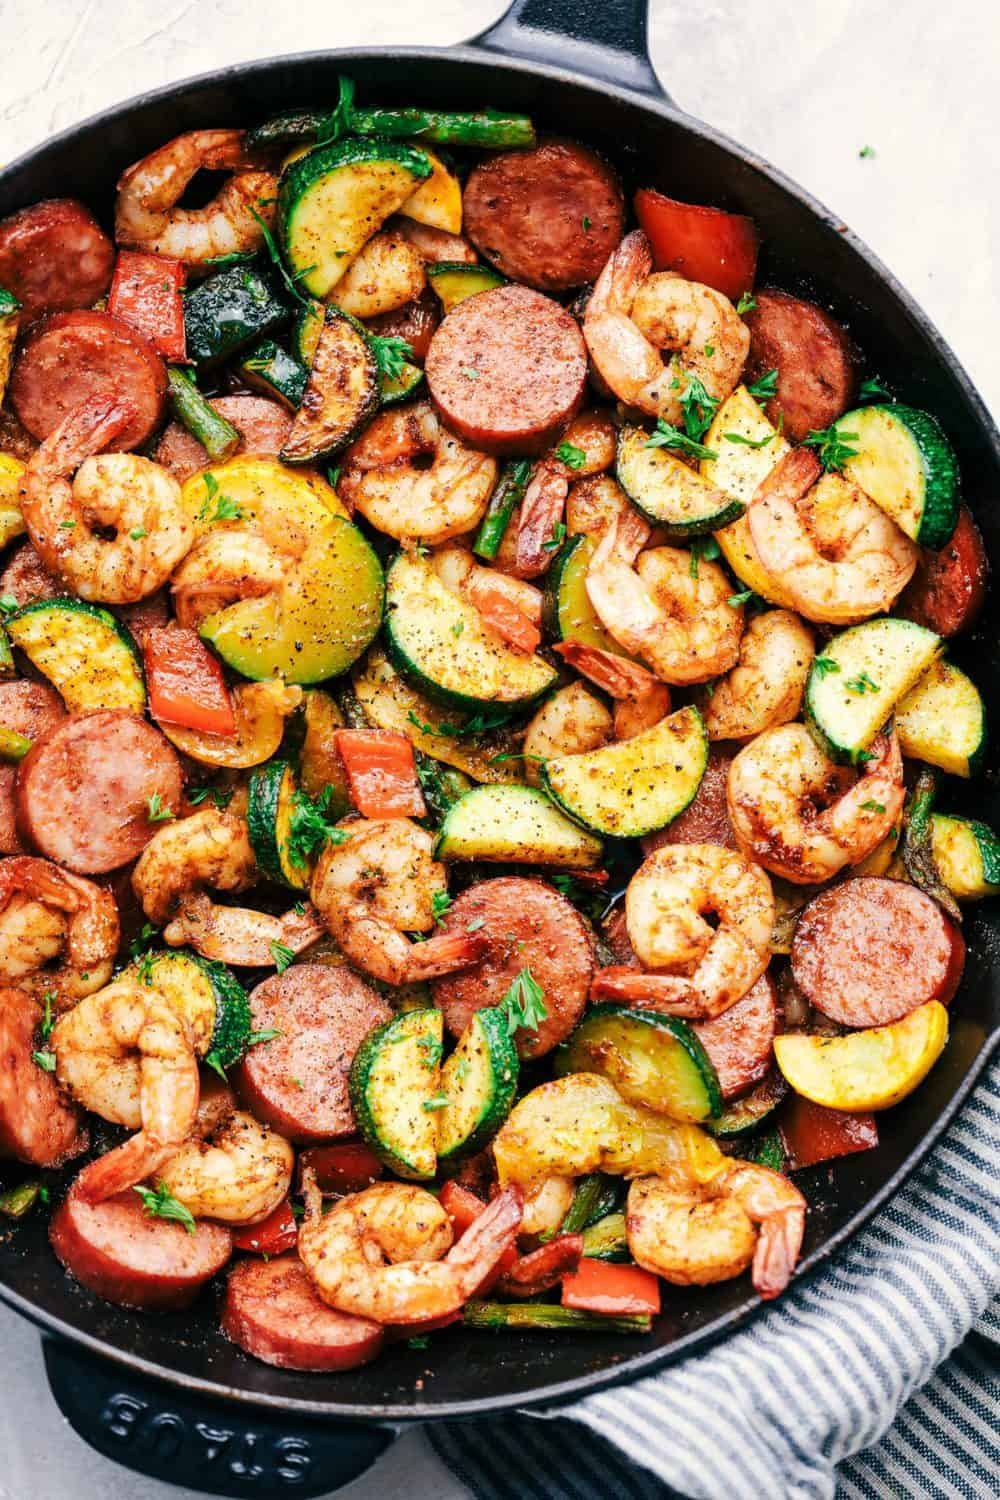 Cajun Shrimp and Sausage Vegetable Skillet Delicious Low Carb Recipe